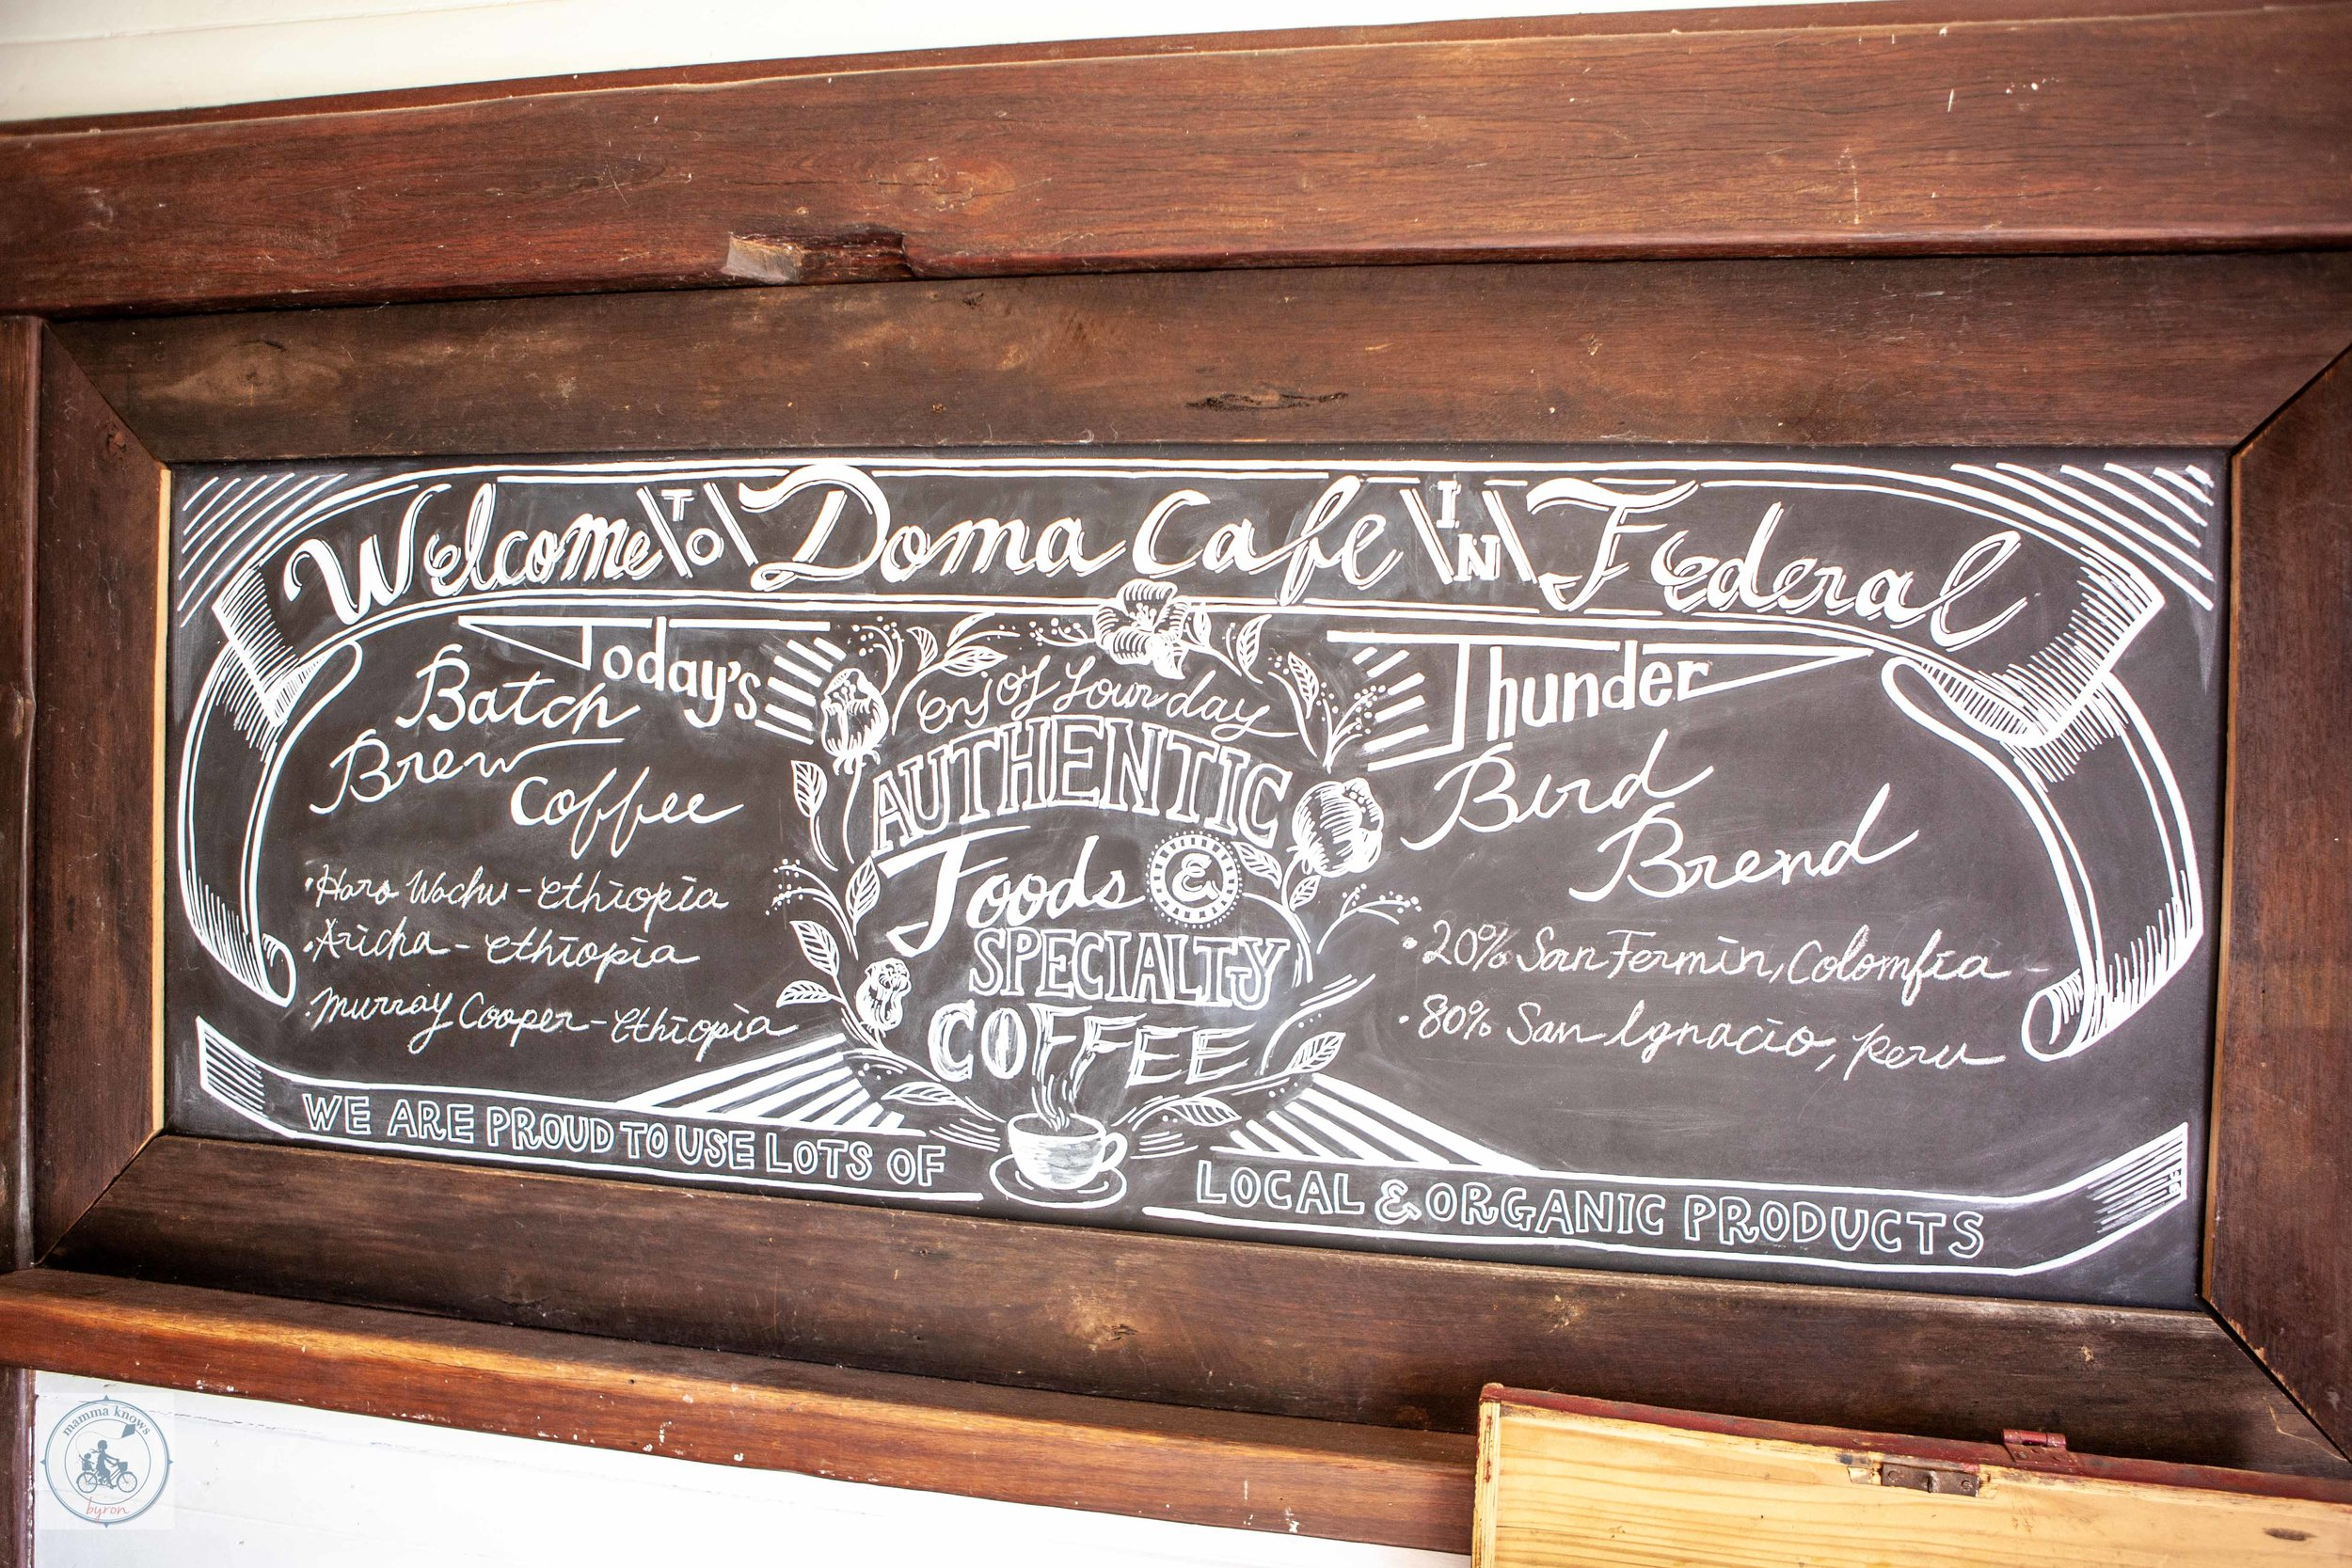 Doma Cafe - Mamma Knows Byron